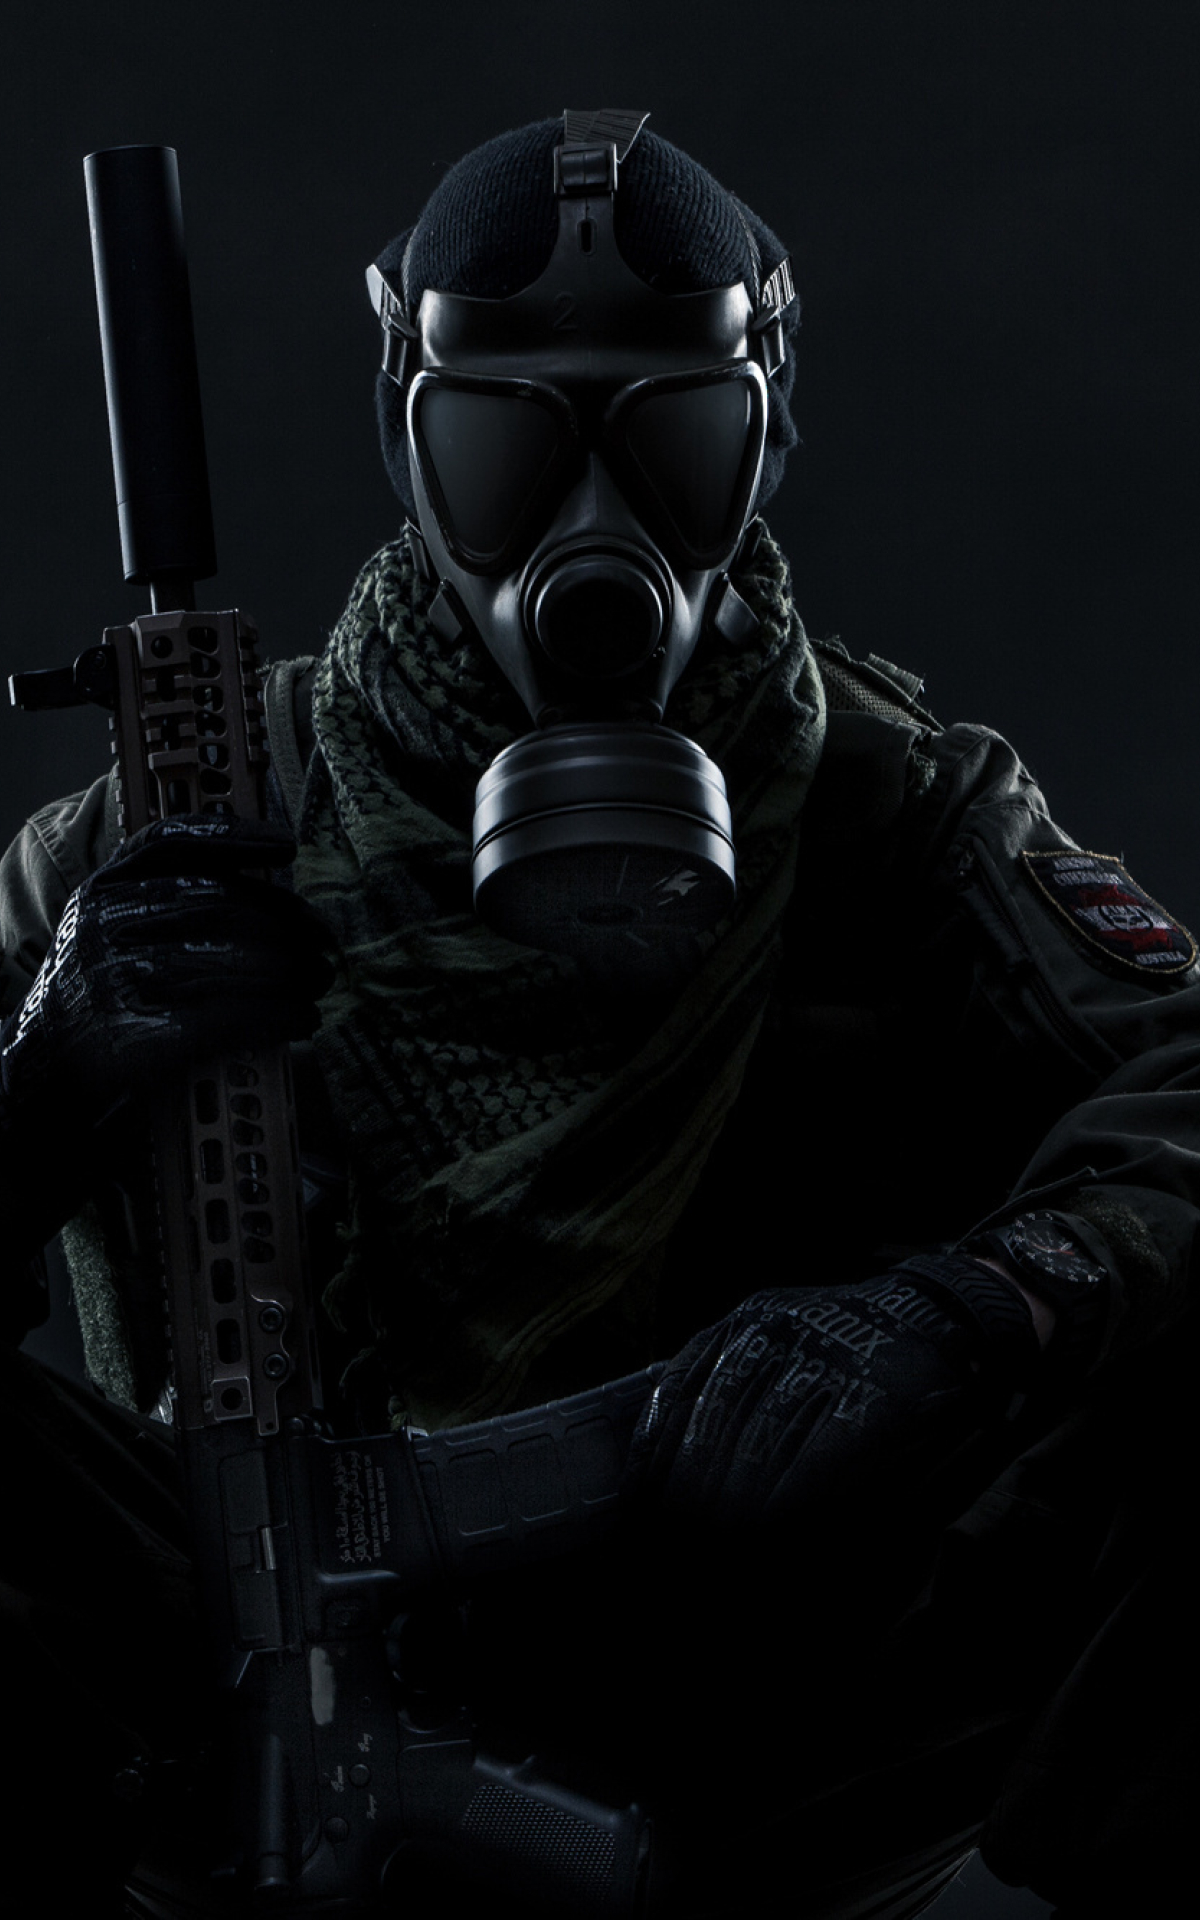 1200x1920 Gas Mask Soldier Tom Clancy S Ghost Recon Wildlands